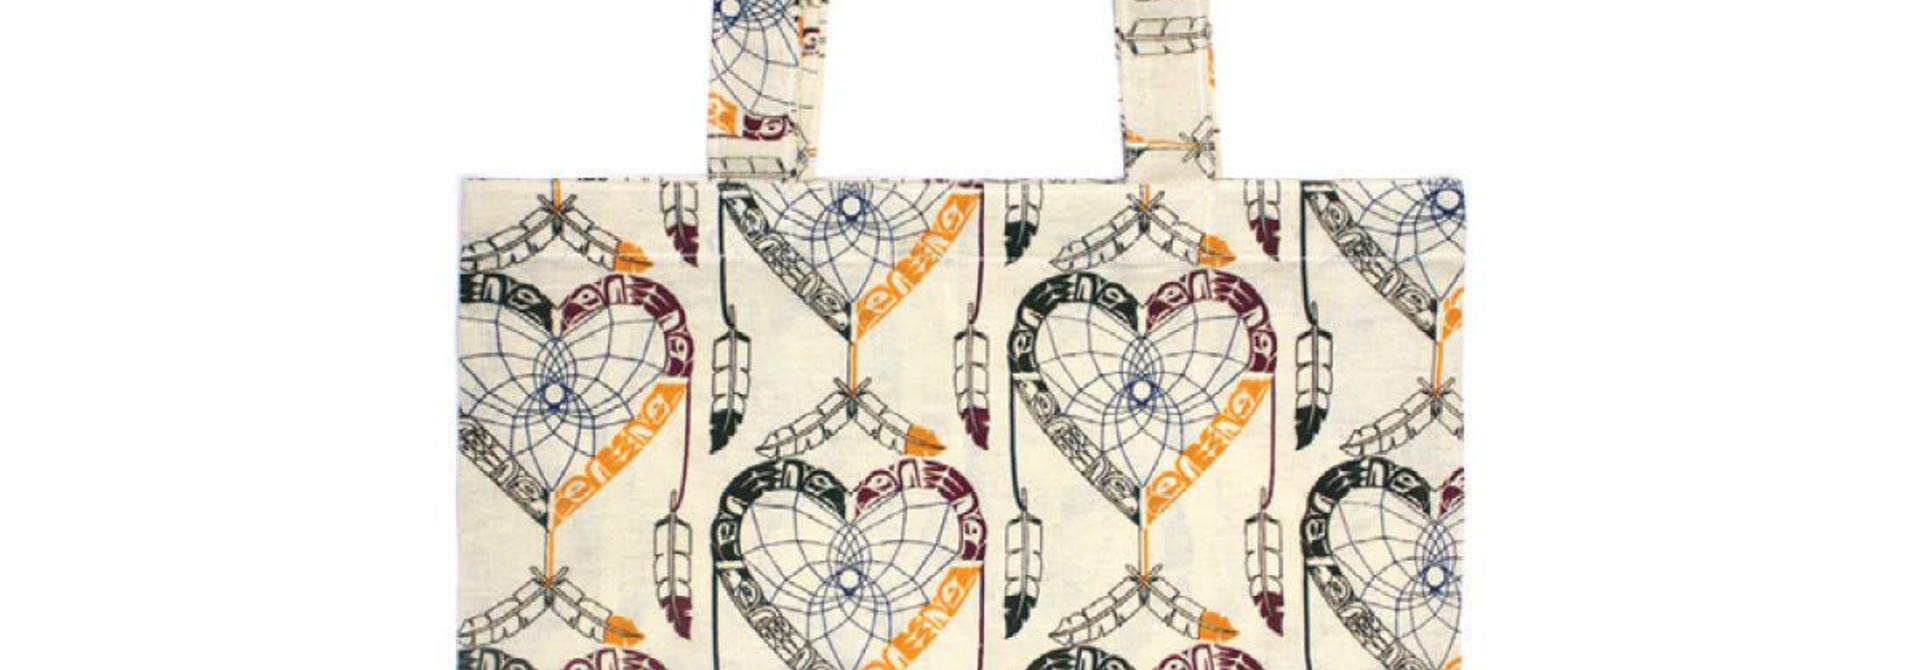 Cotton Eco Tote - Healing Eagle Heart by Mervin Windsor